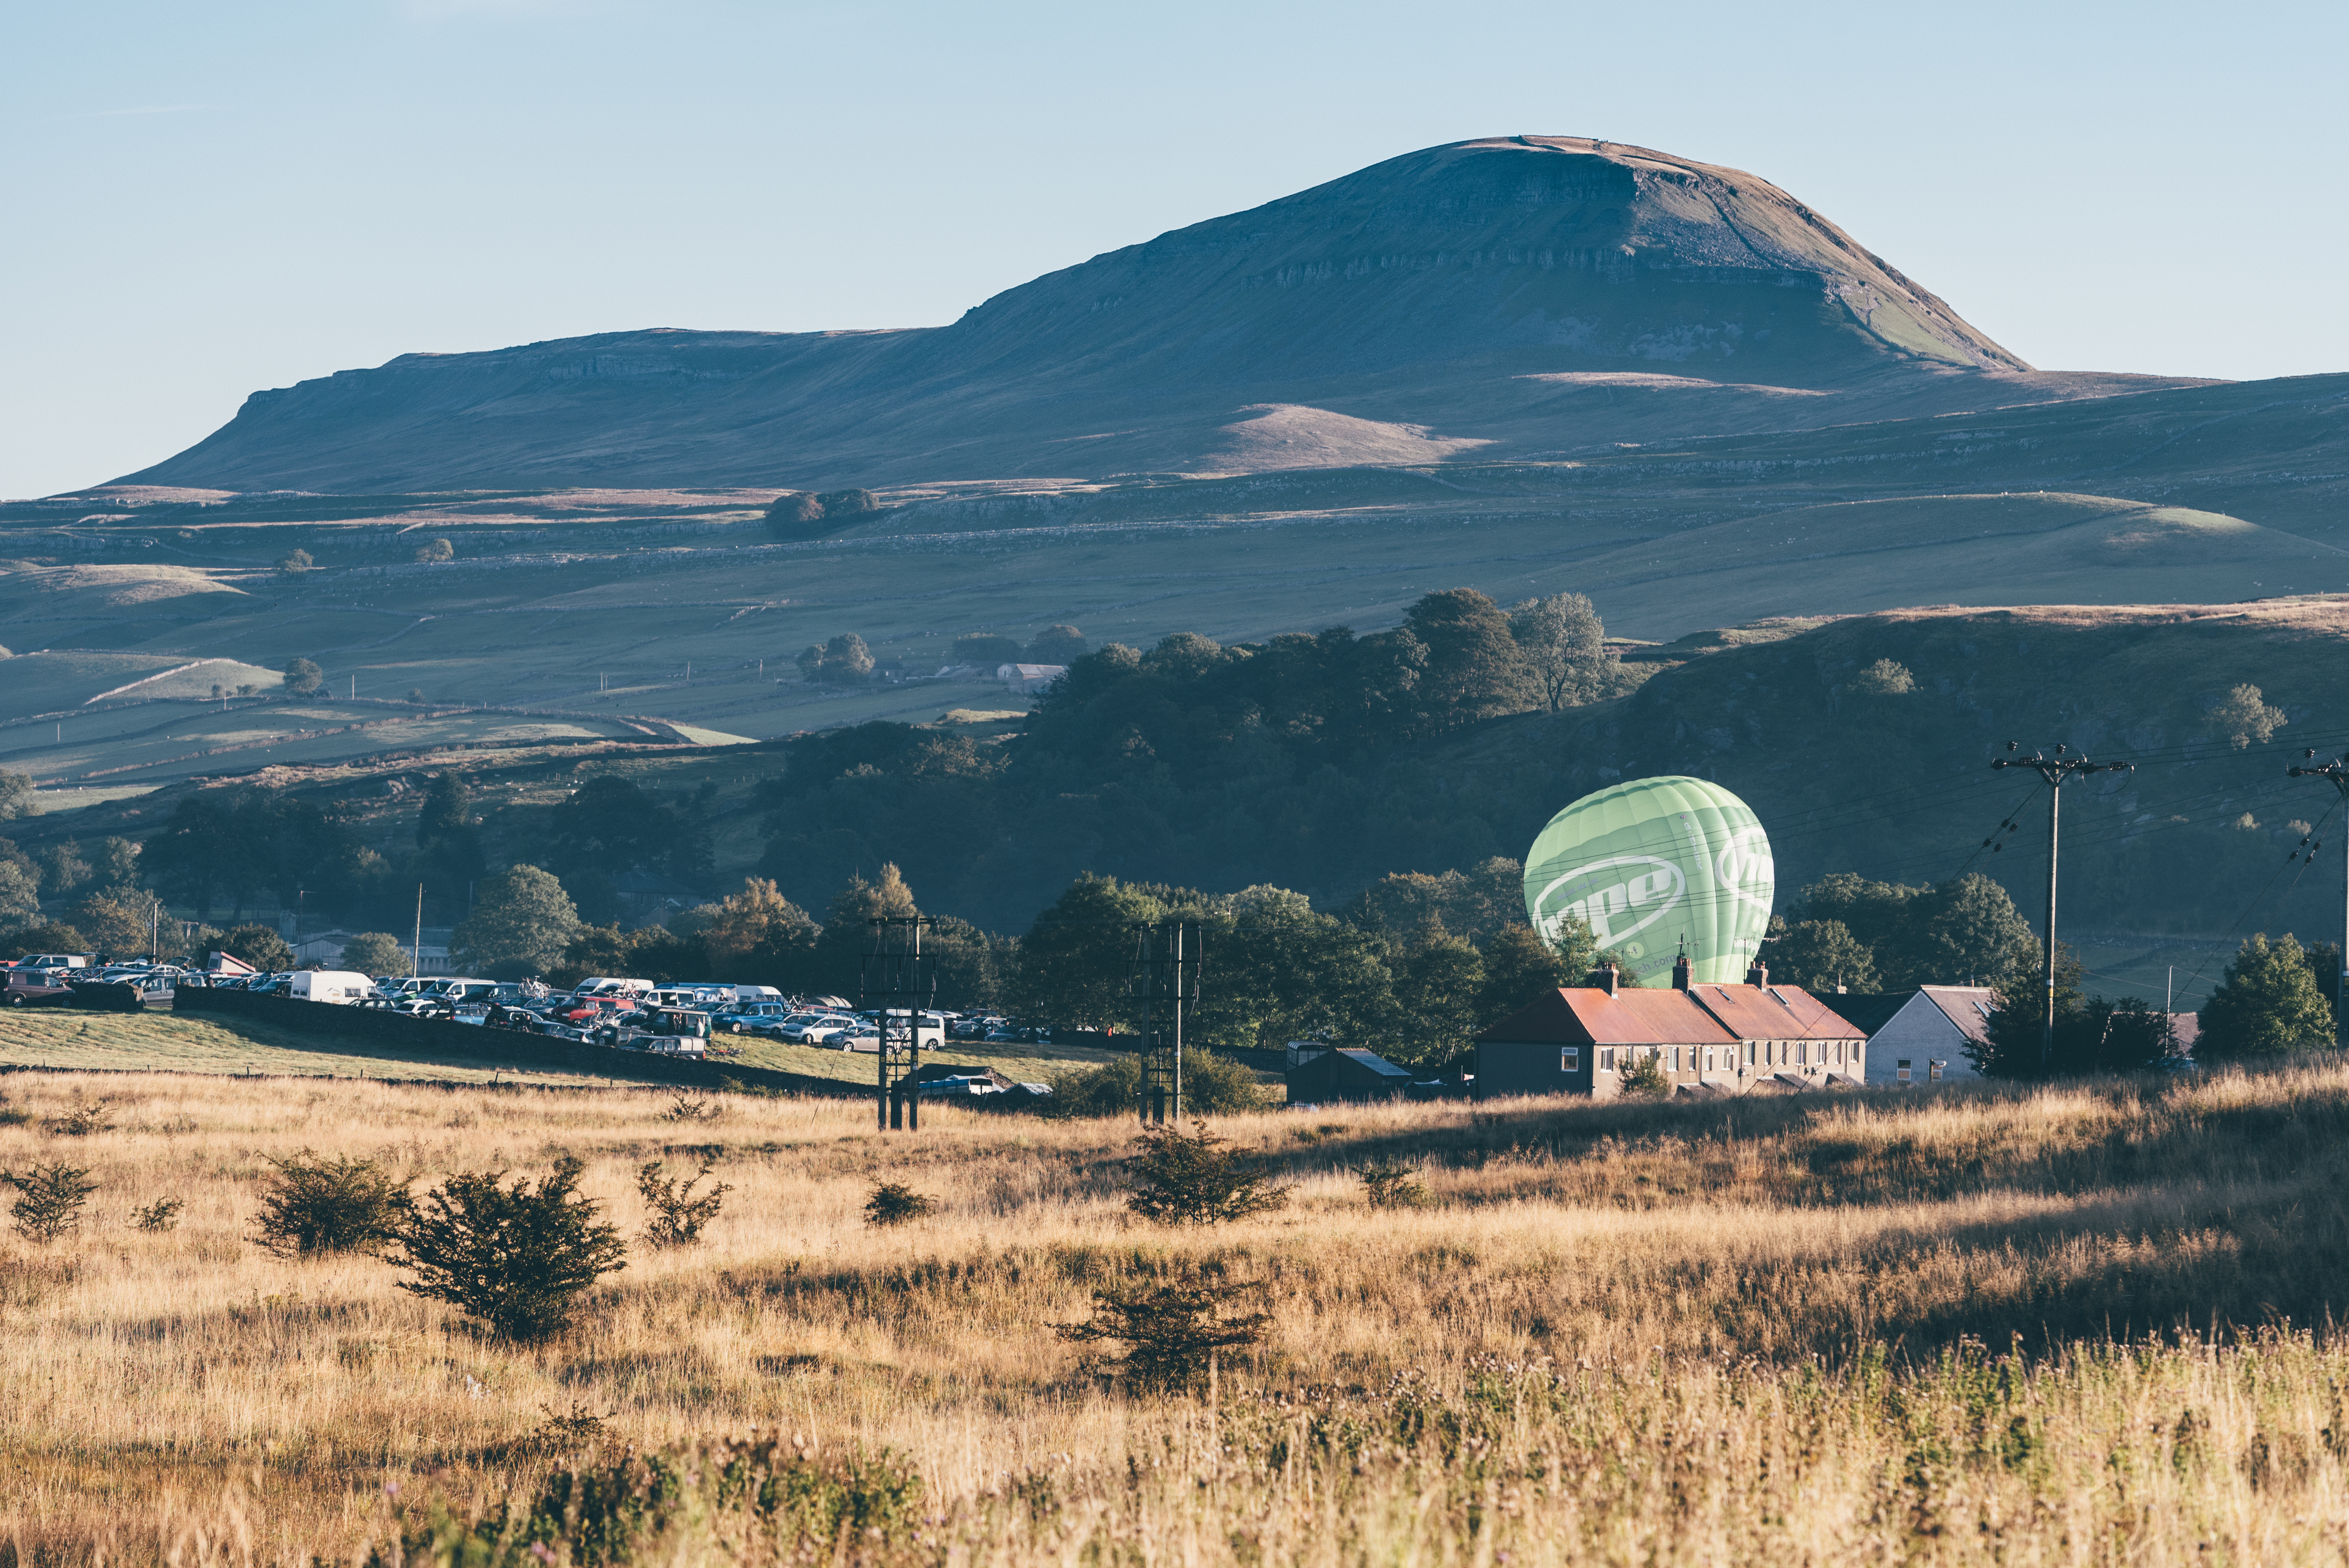 It's a good feeling to wake up to clear blue skies and a Hope balloon. Photo Credit: Russell Ellis